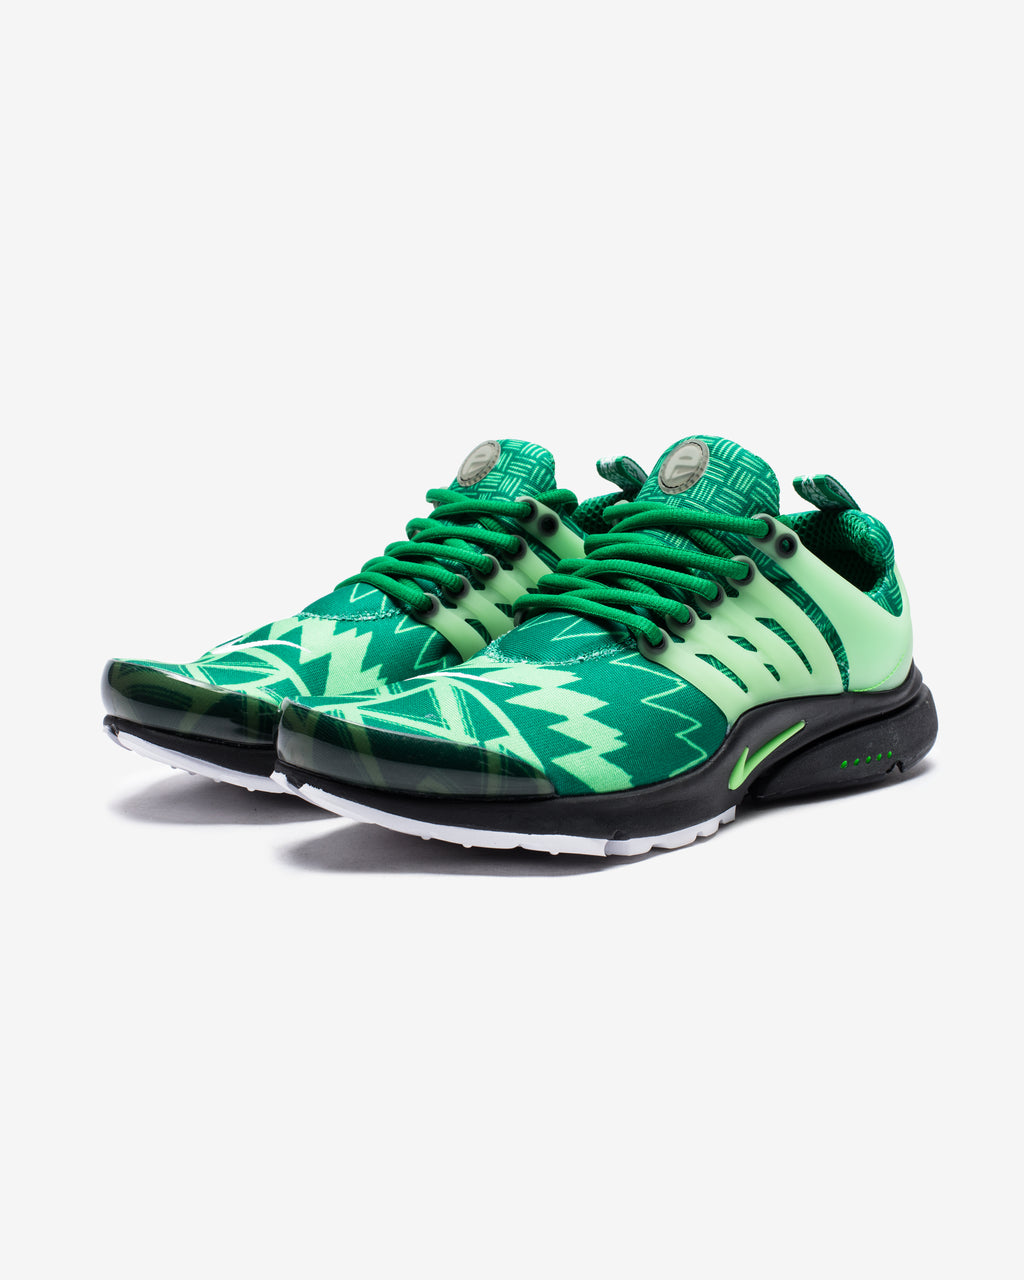 AIR PRESTO - PINEGREEN/ GREENSTRIKE/ BLACK/ WHITE